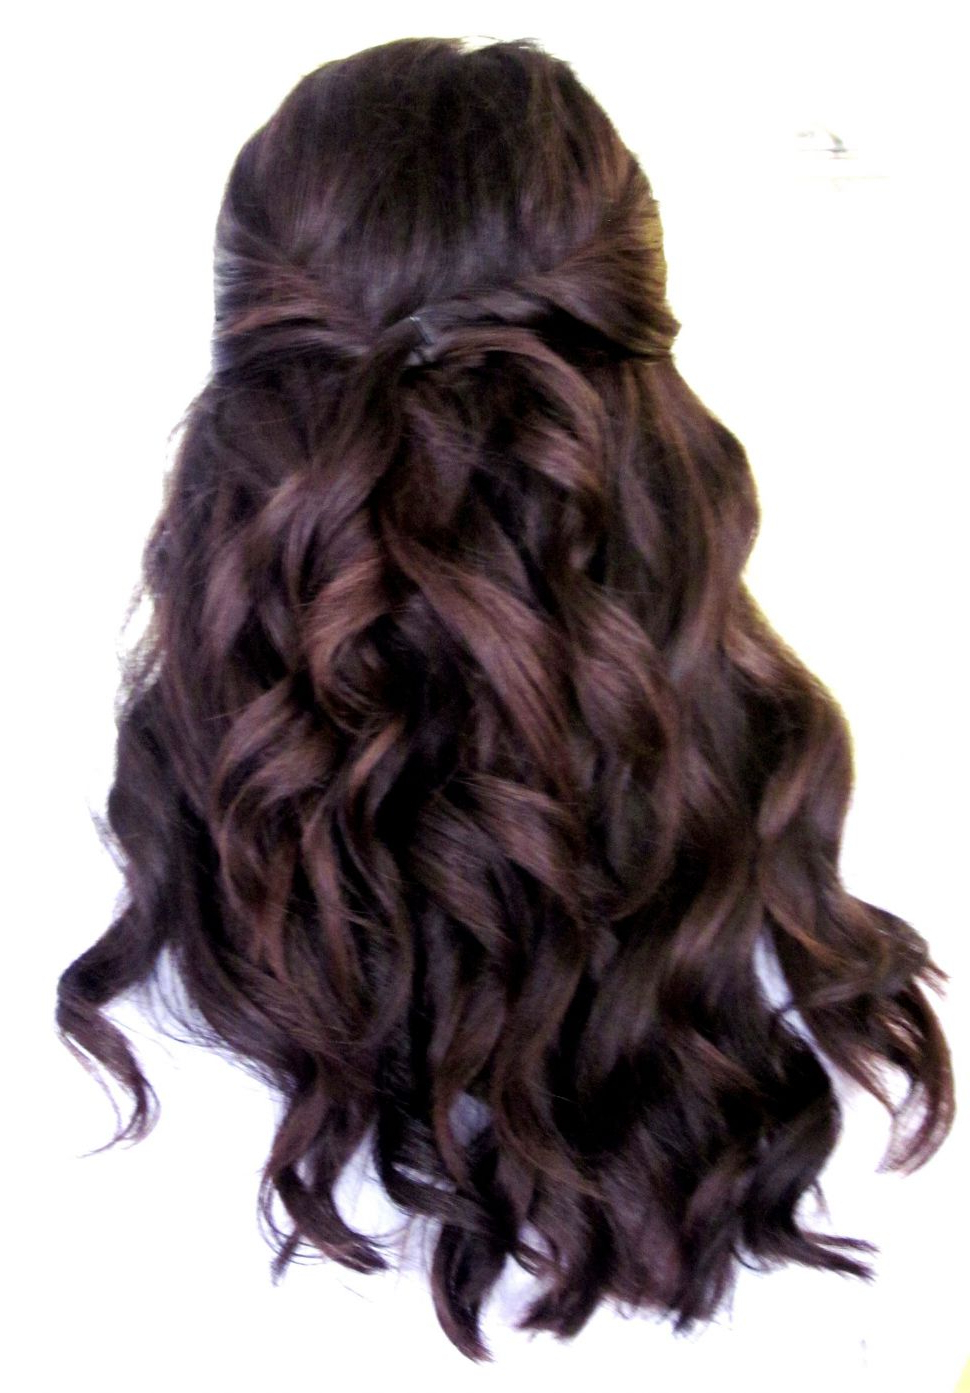 Hairstyles : Loose Curls Hairstyles Super Amazing Loose For Most Up To Date Pinned Curls Hairstyles (Gallery 16 of 20)